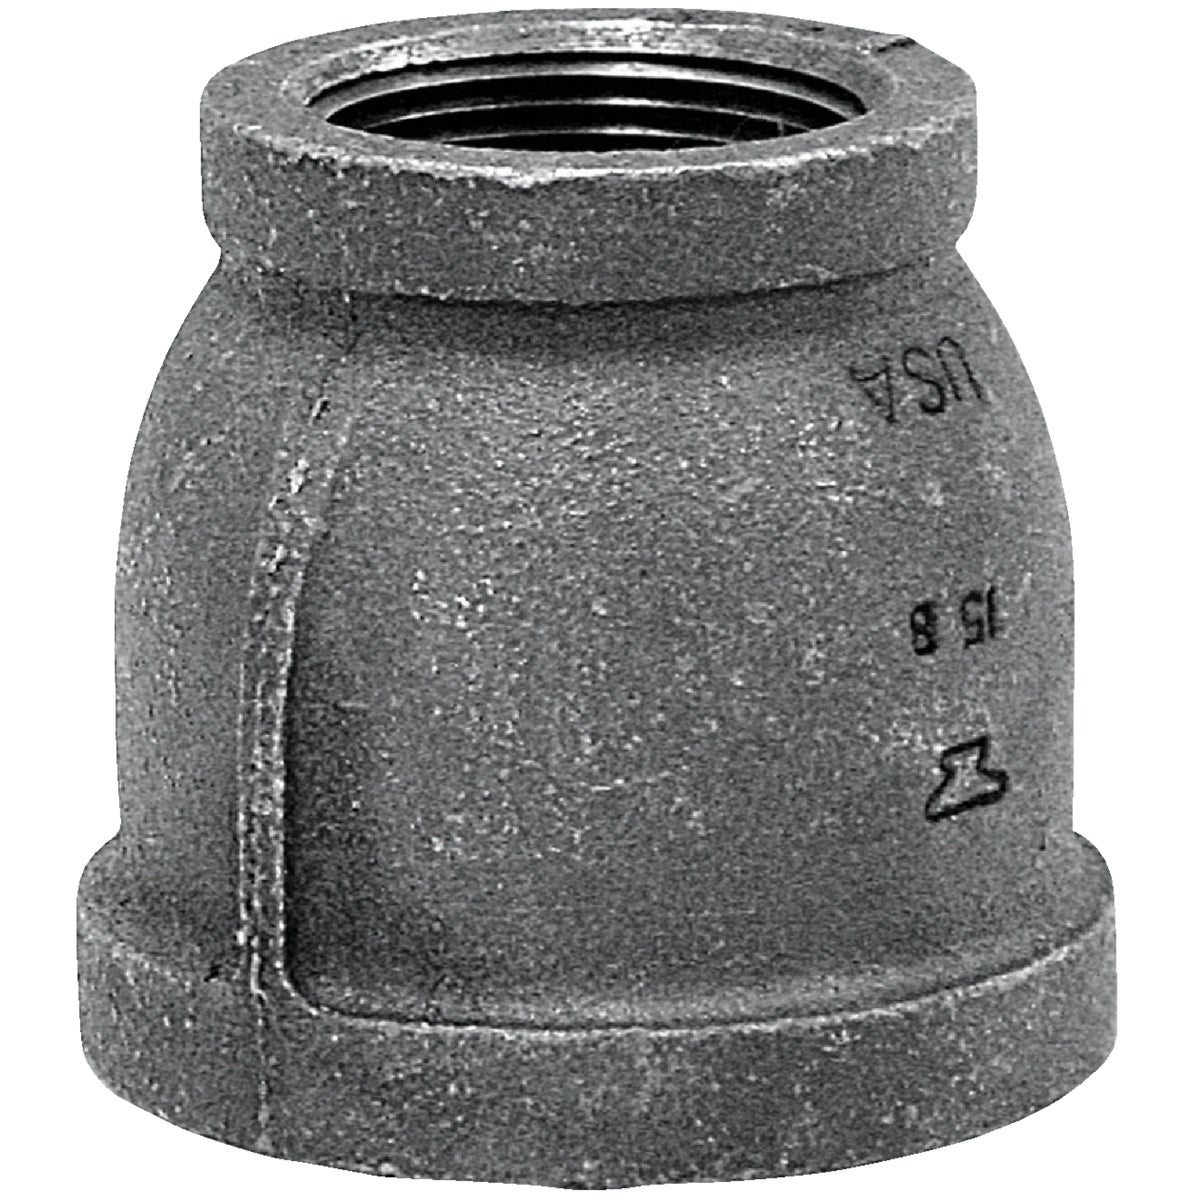 1-1/4X1 BLK COUPLING - 8700134409 by Anvil International